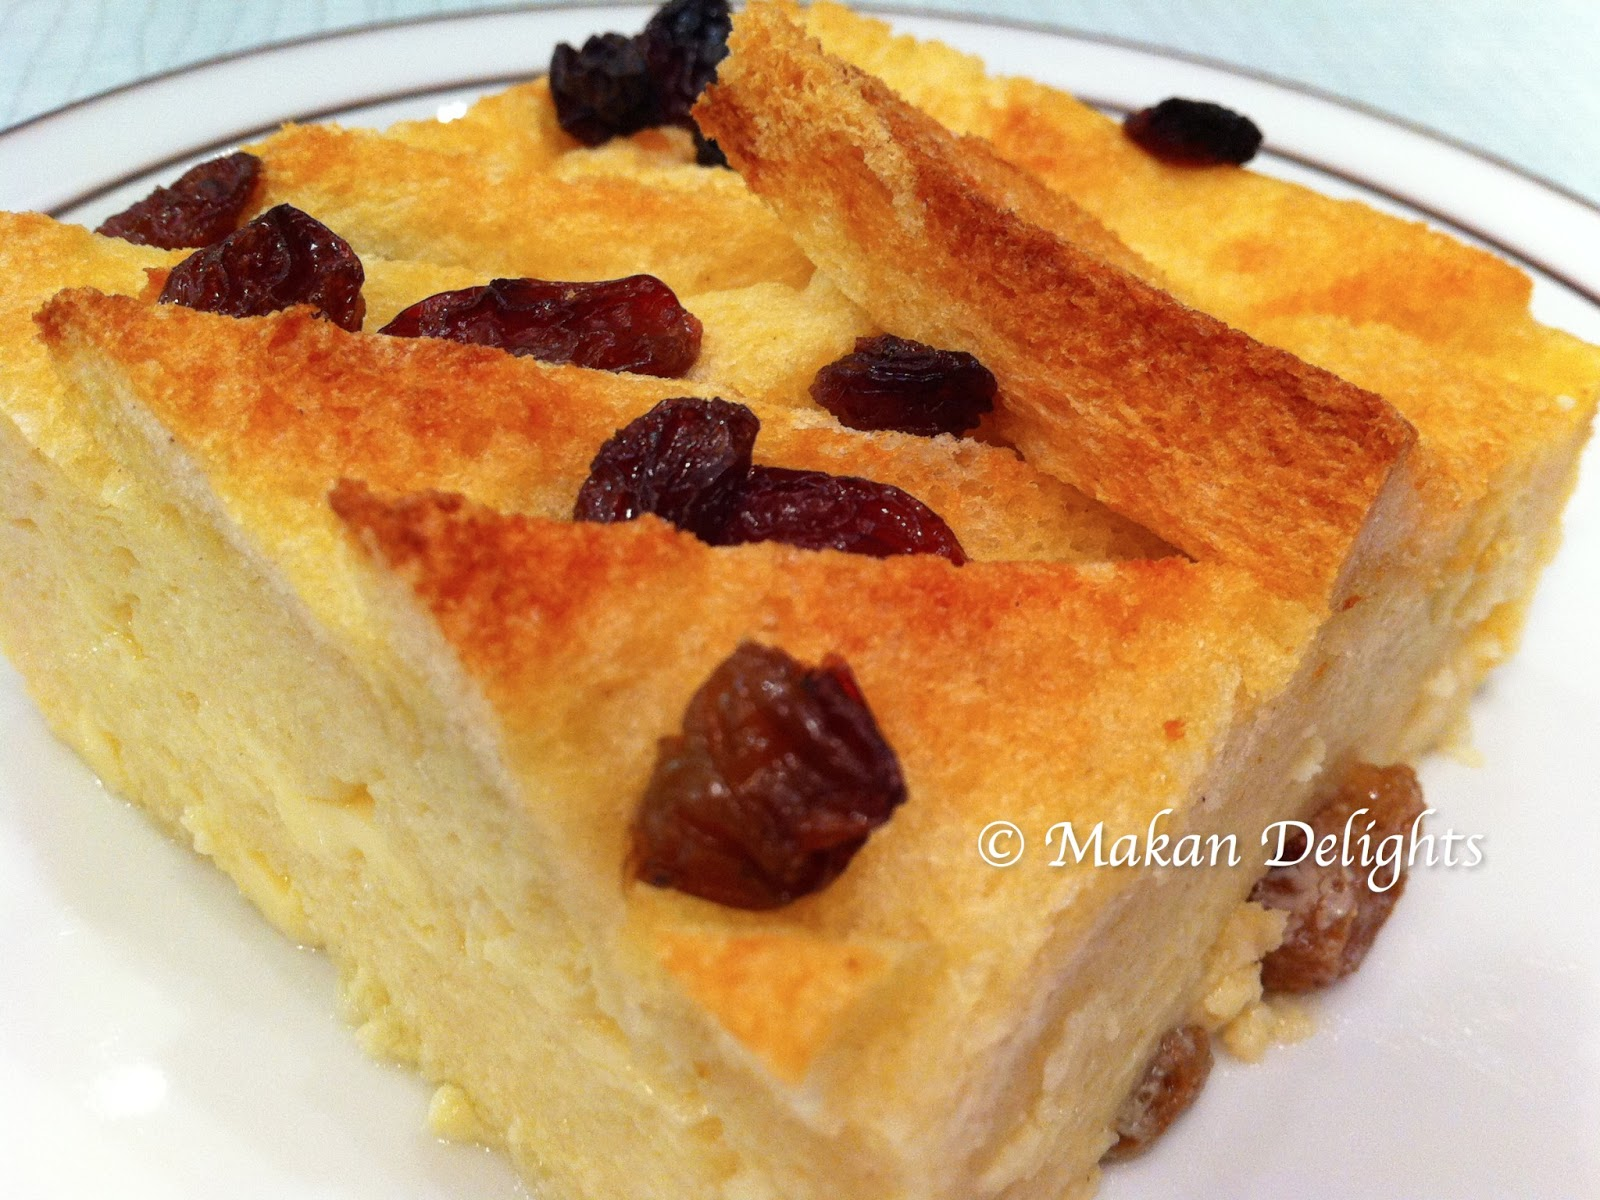 Makan Delights: Bread & Butter Pudding